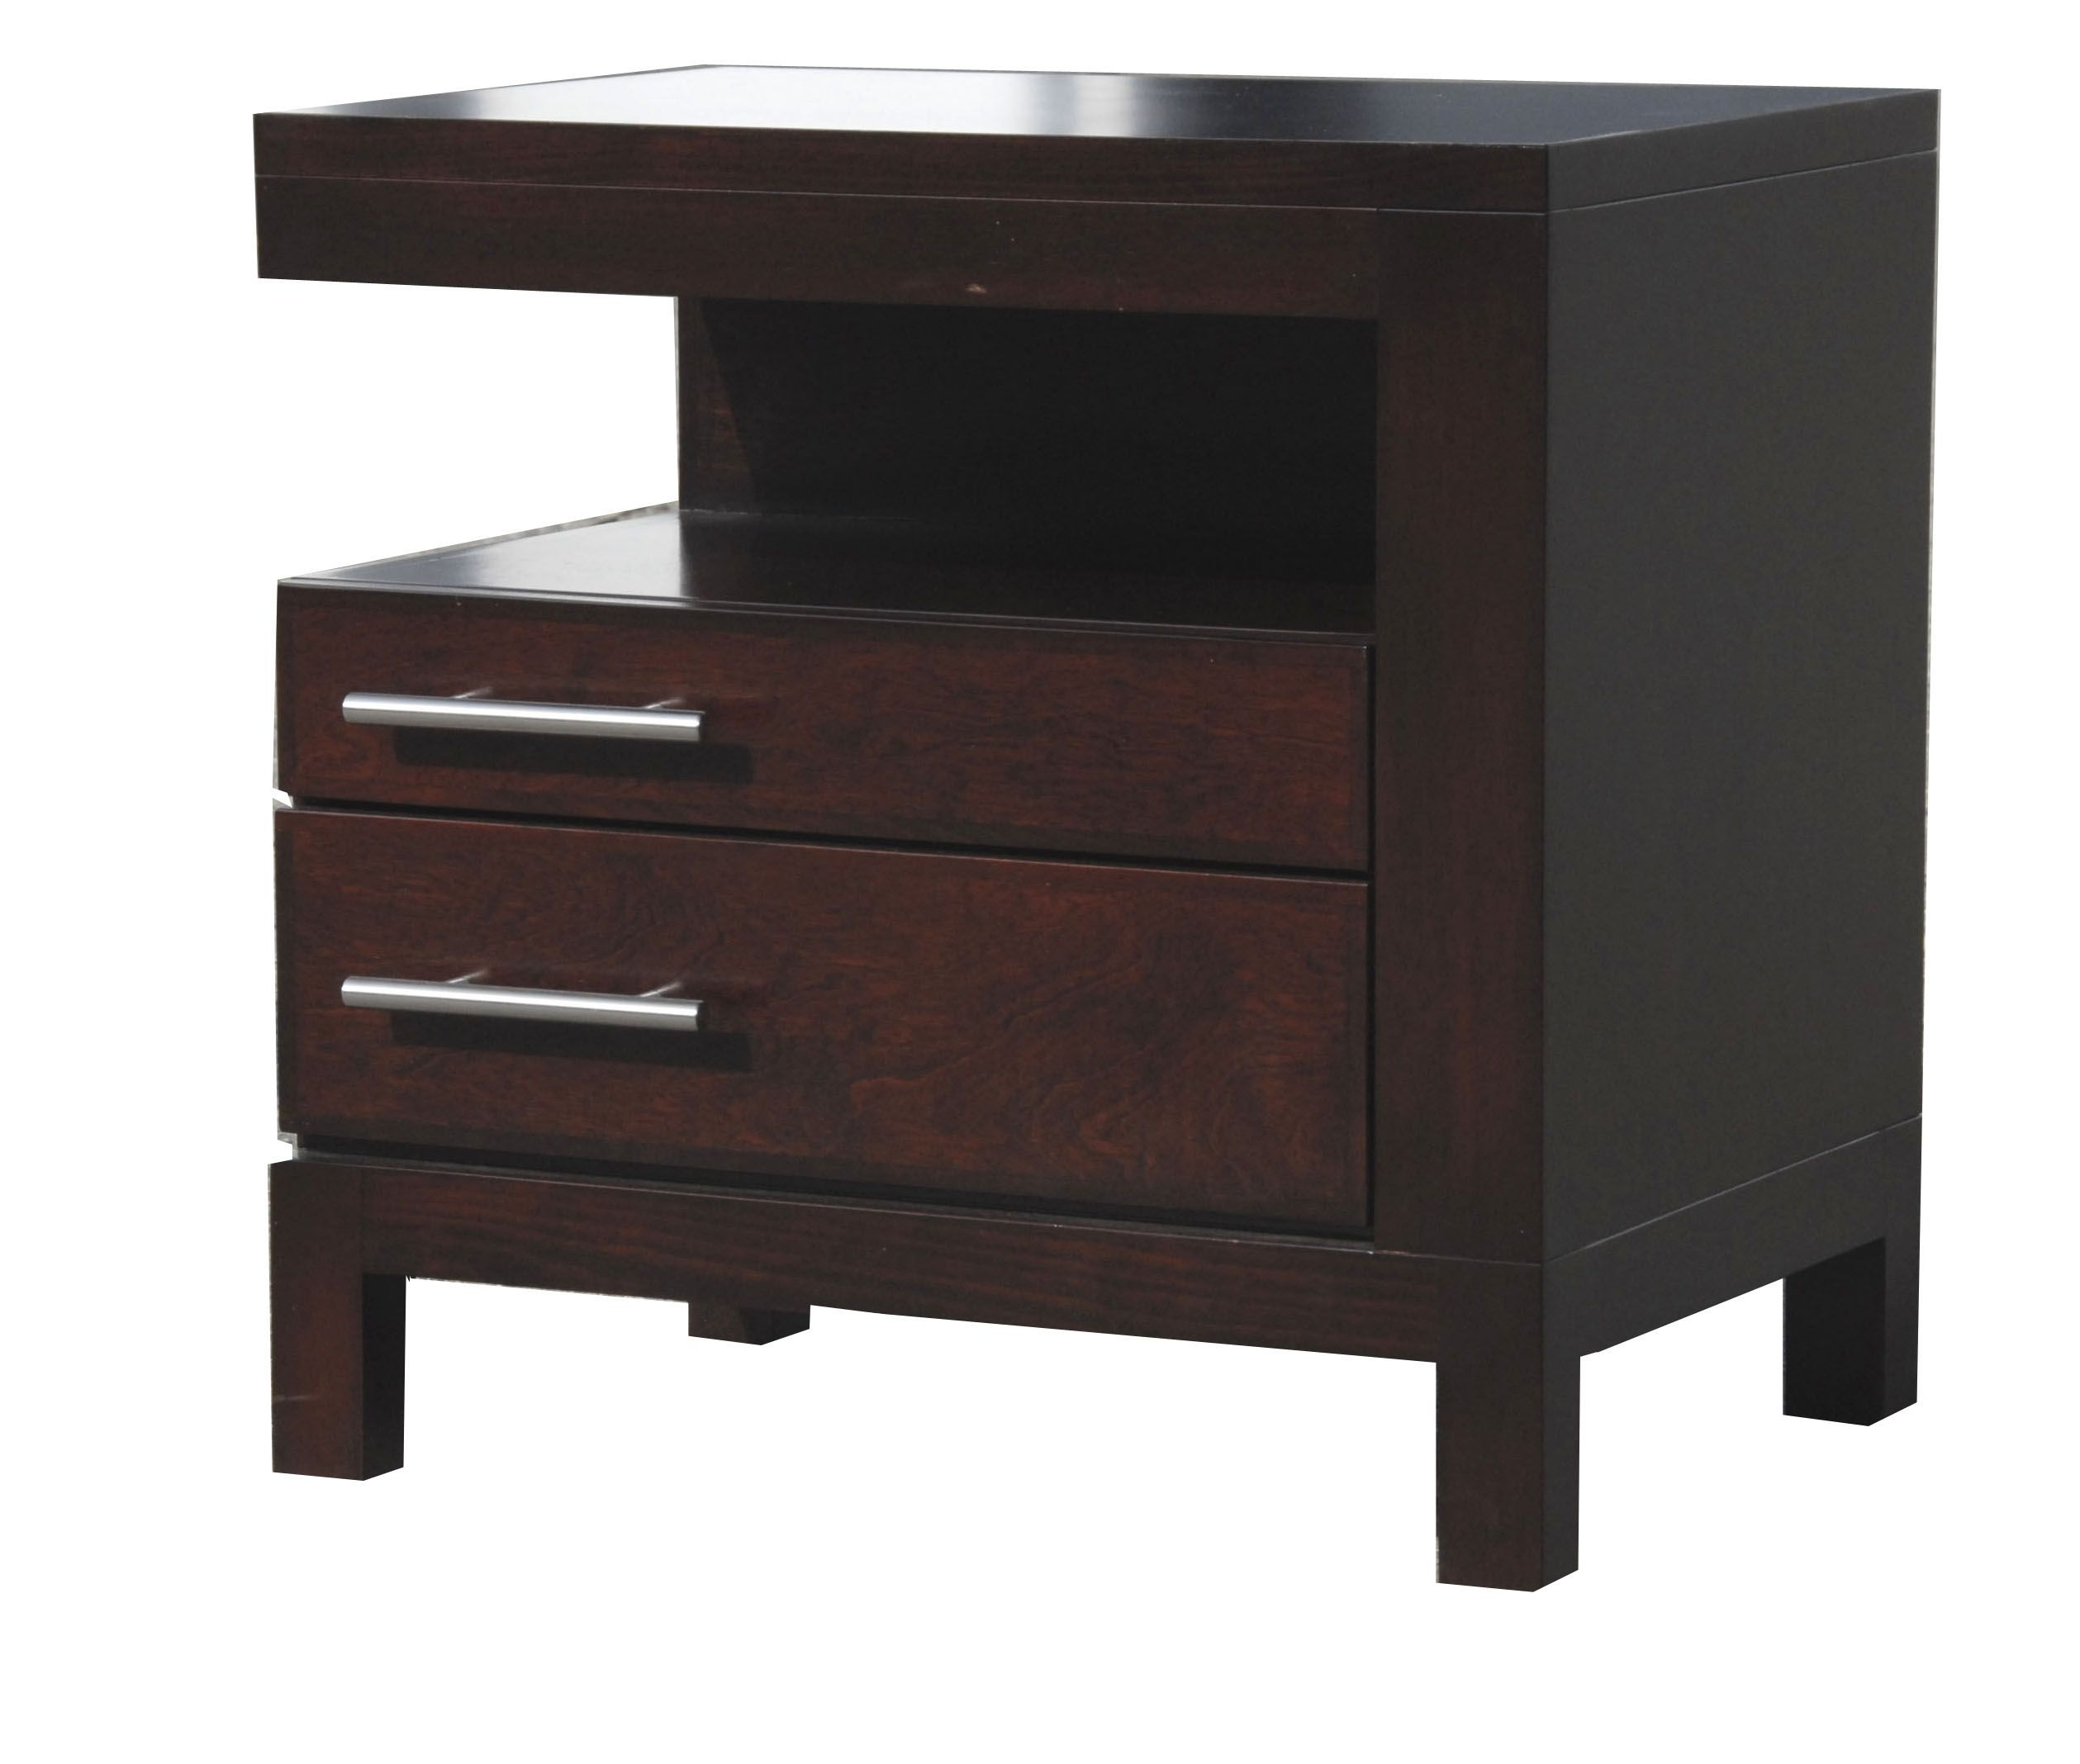 Creative Nightstand Ideas Our Very Popular Aston Nightstand Unique Style And Built